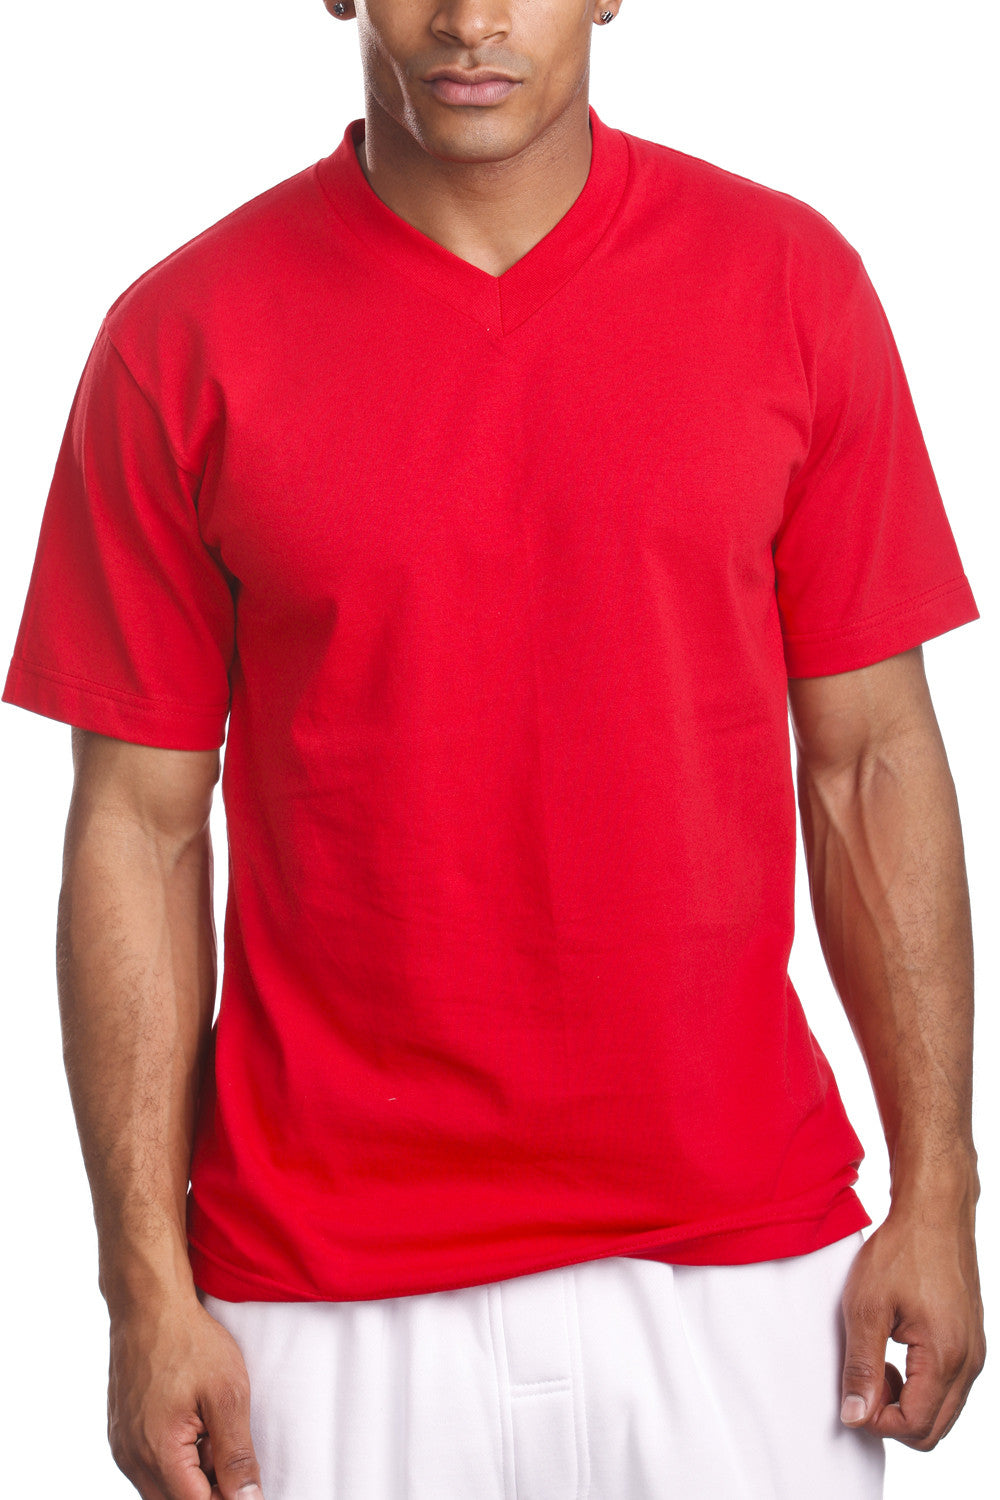 Mens Casual V-Neck T-Shirt Red